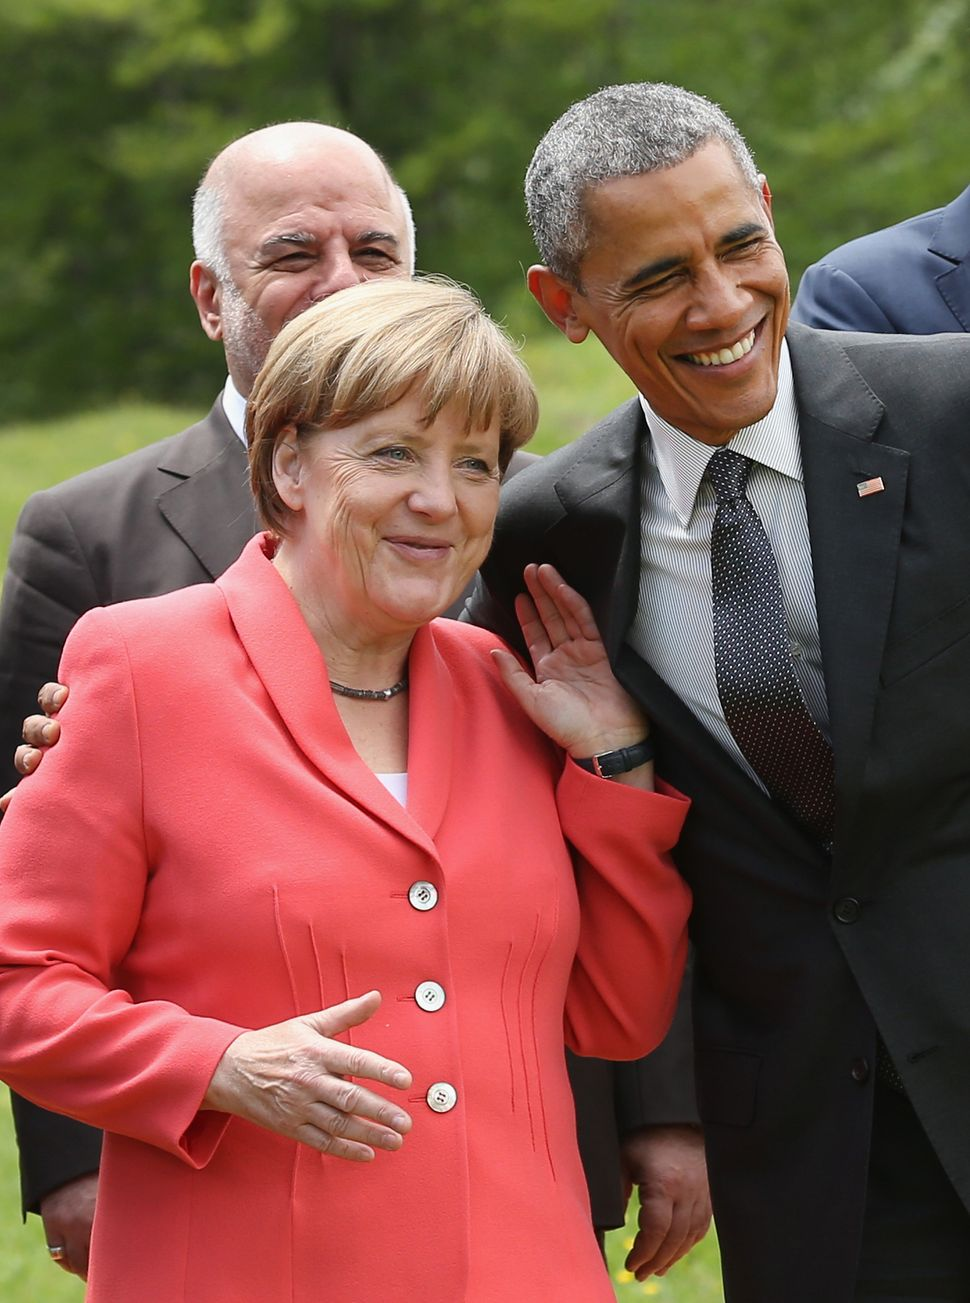 Merkel and Obama chat during the Outreach group photo on the second day of the summit of G7 nations at Schloss Elmau on June